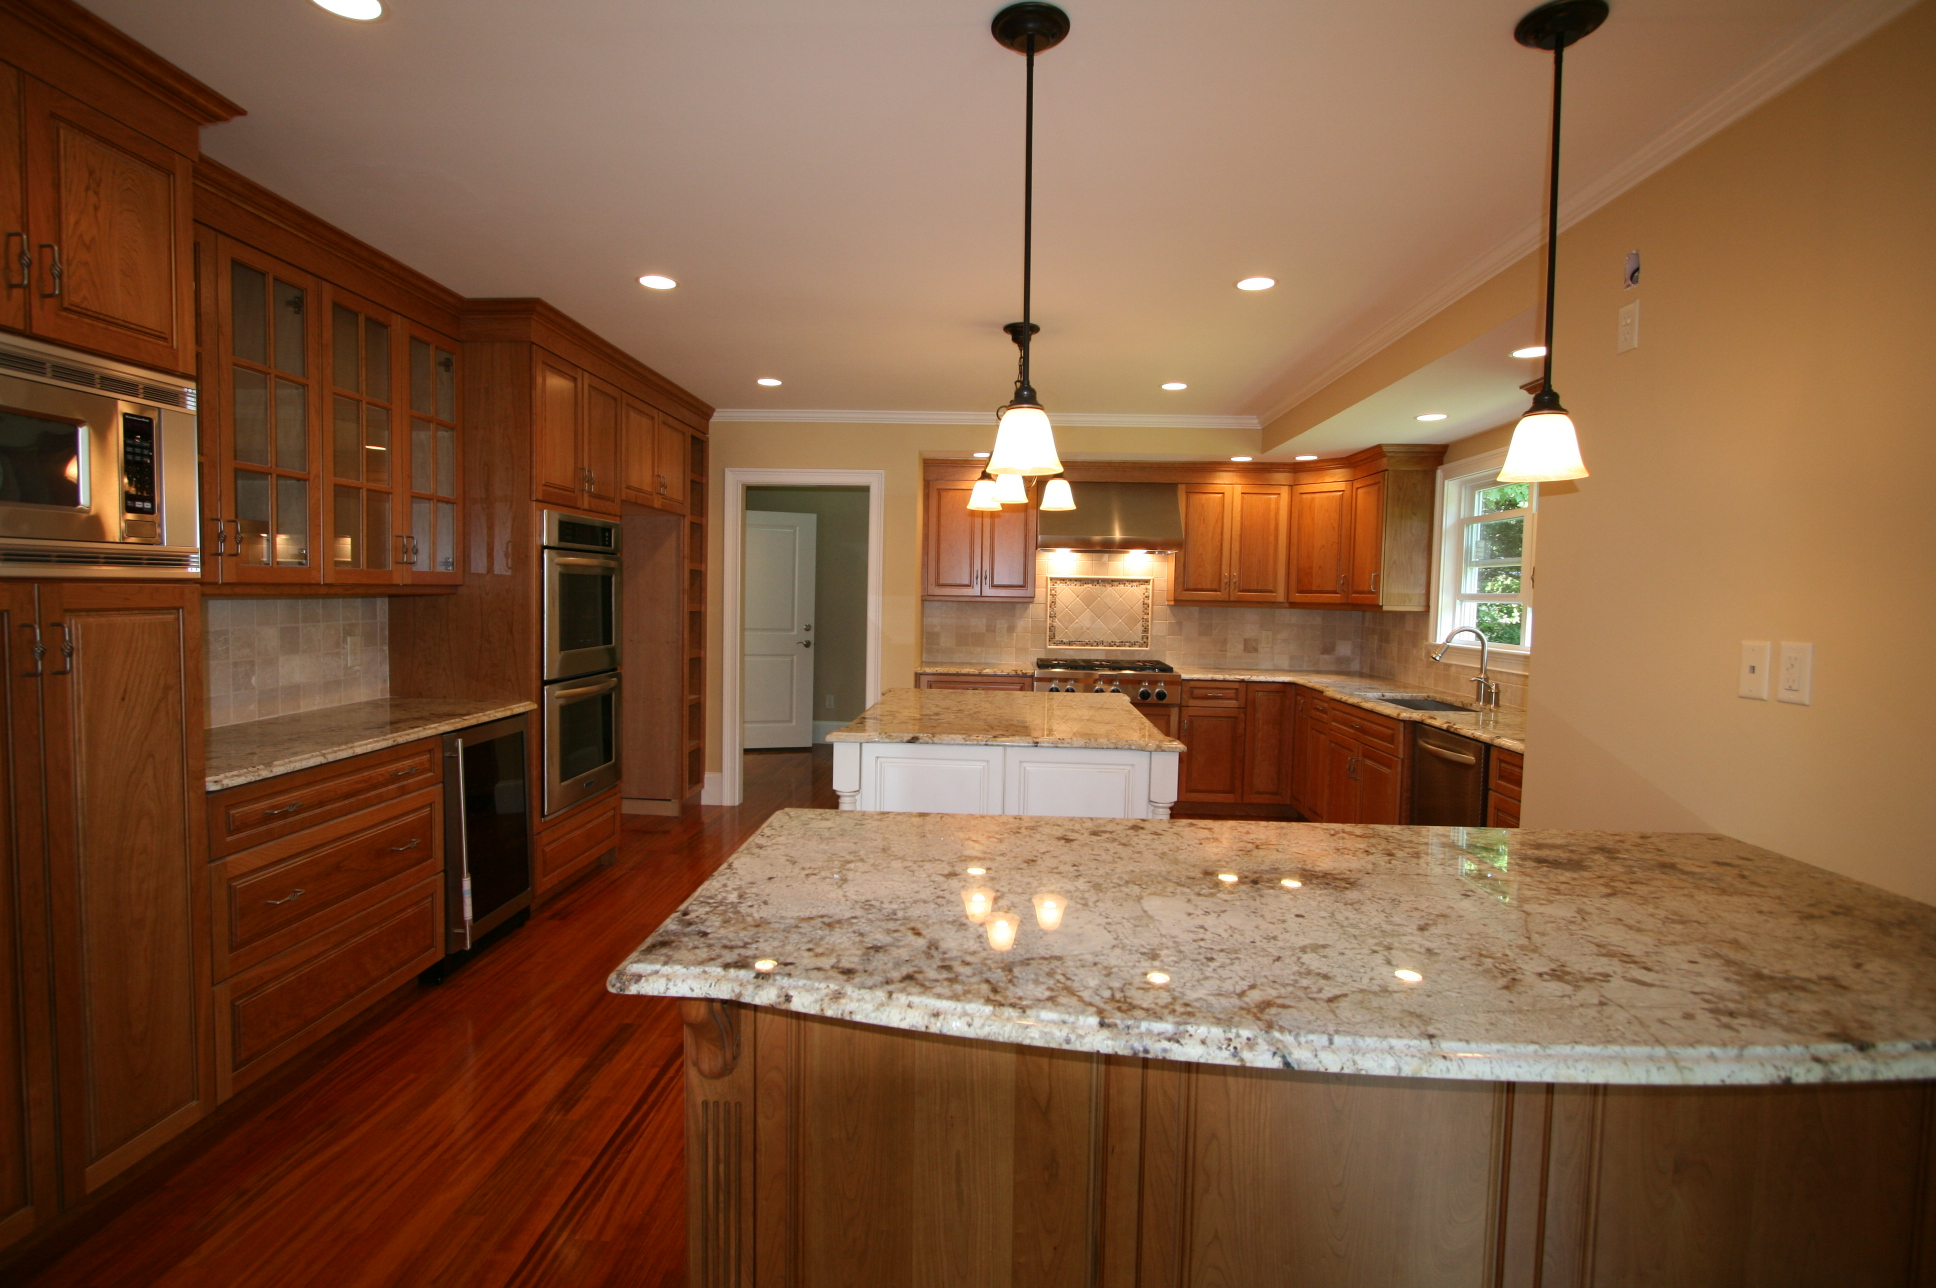 Check out the pics of new kitchens halliday construction - Photos of kitchen ...